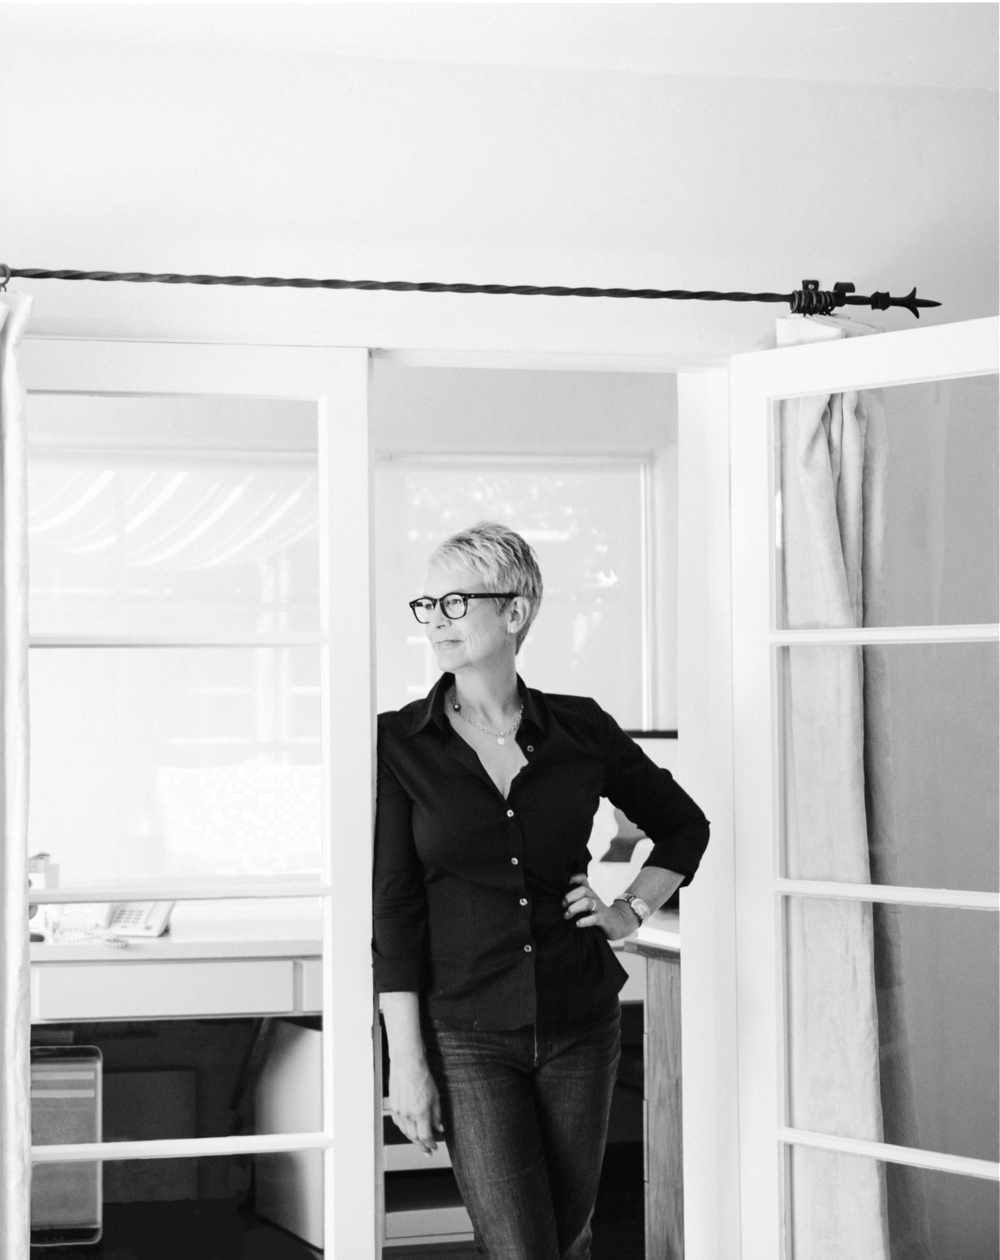 Jamie_Lee_Curtis_Credit_Michelle_Mishina.png